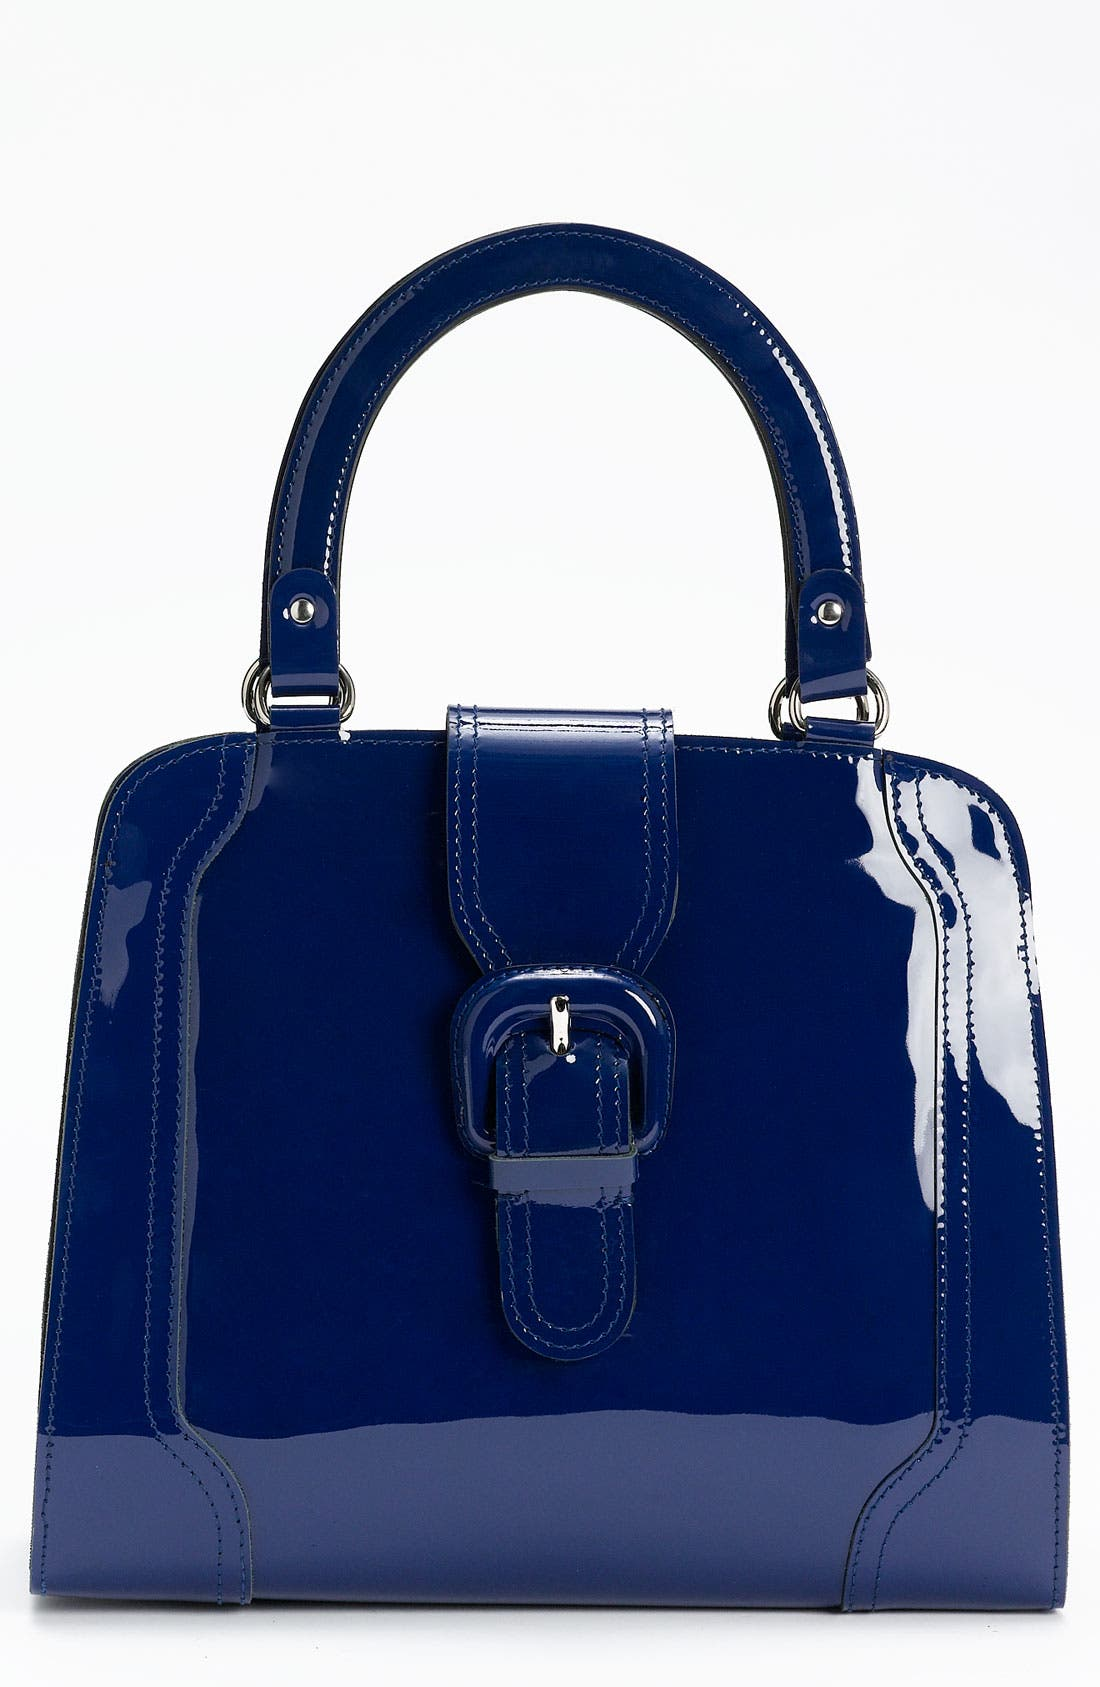 Alternate Image 1 Selected - Marni 'Medium' Patent Leather Frame Bag